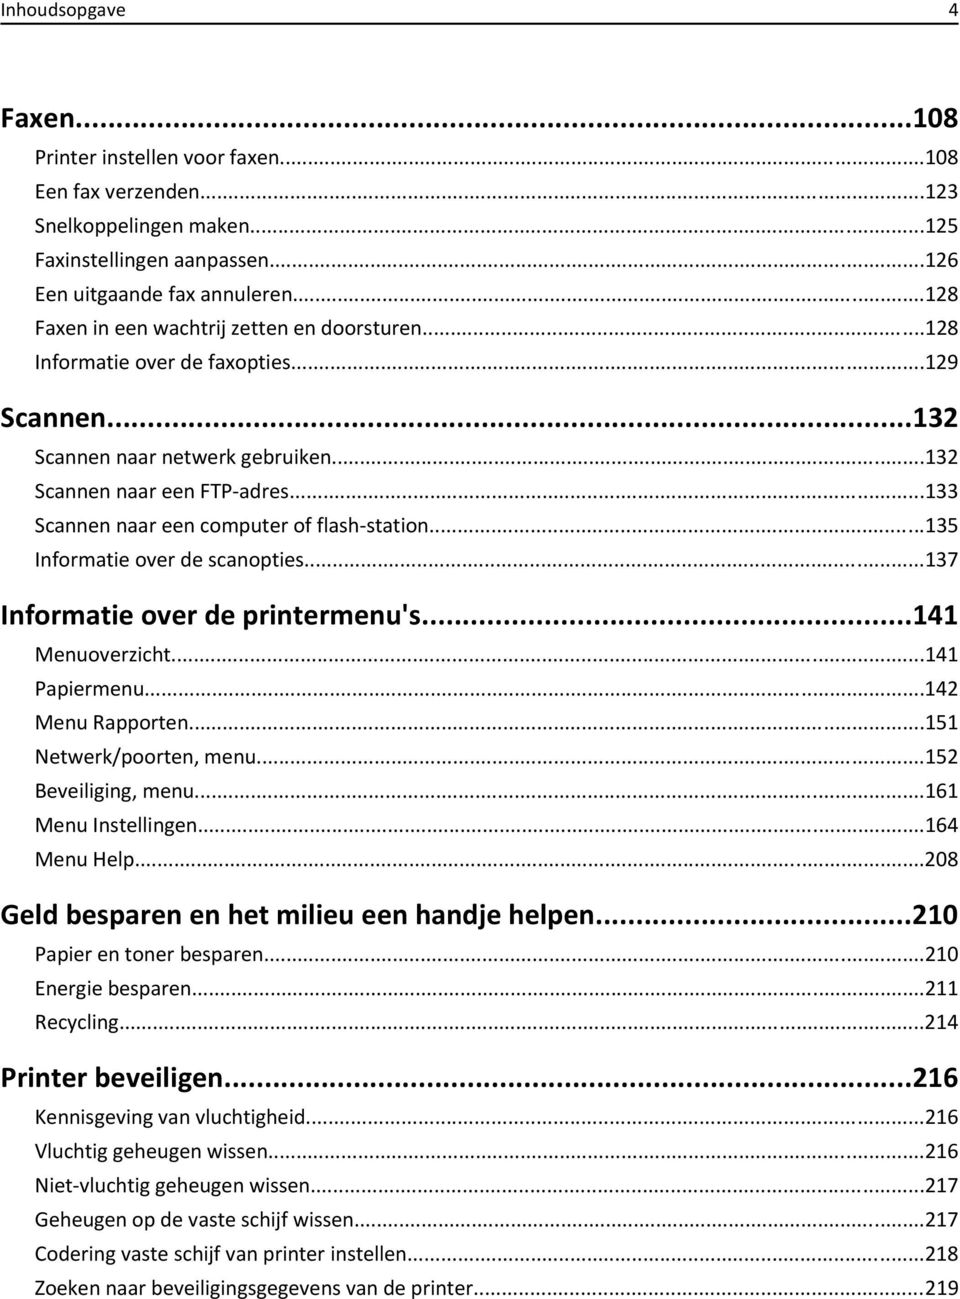 ..133 Scannen naar een computer of flash-station...135 Informatie over de scanopties...137 Informatie over de printermenu's...141 Menuoverzicht...141 Papiermenu...142 Menu Rapporten.